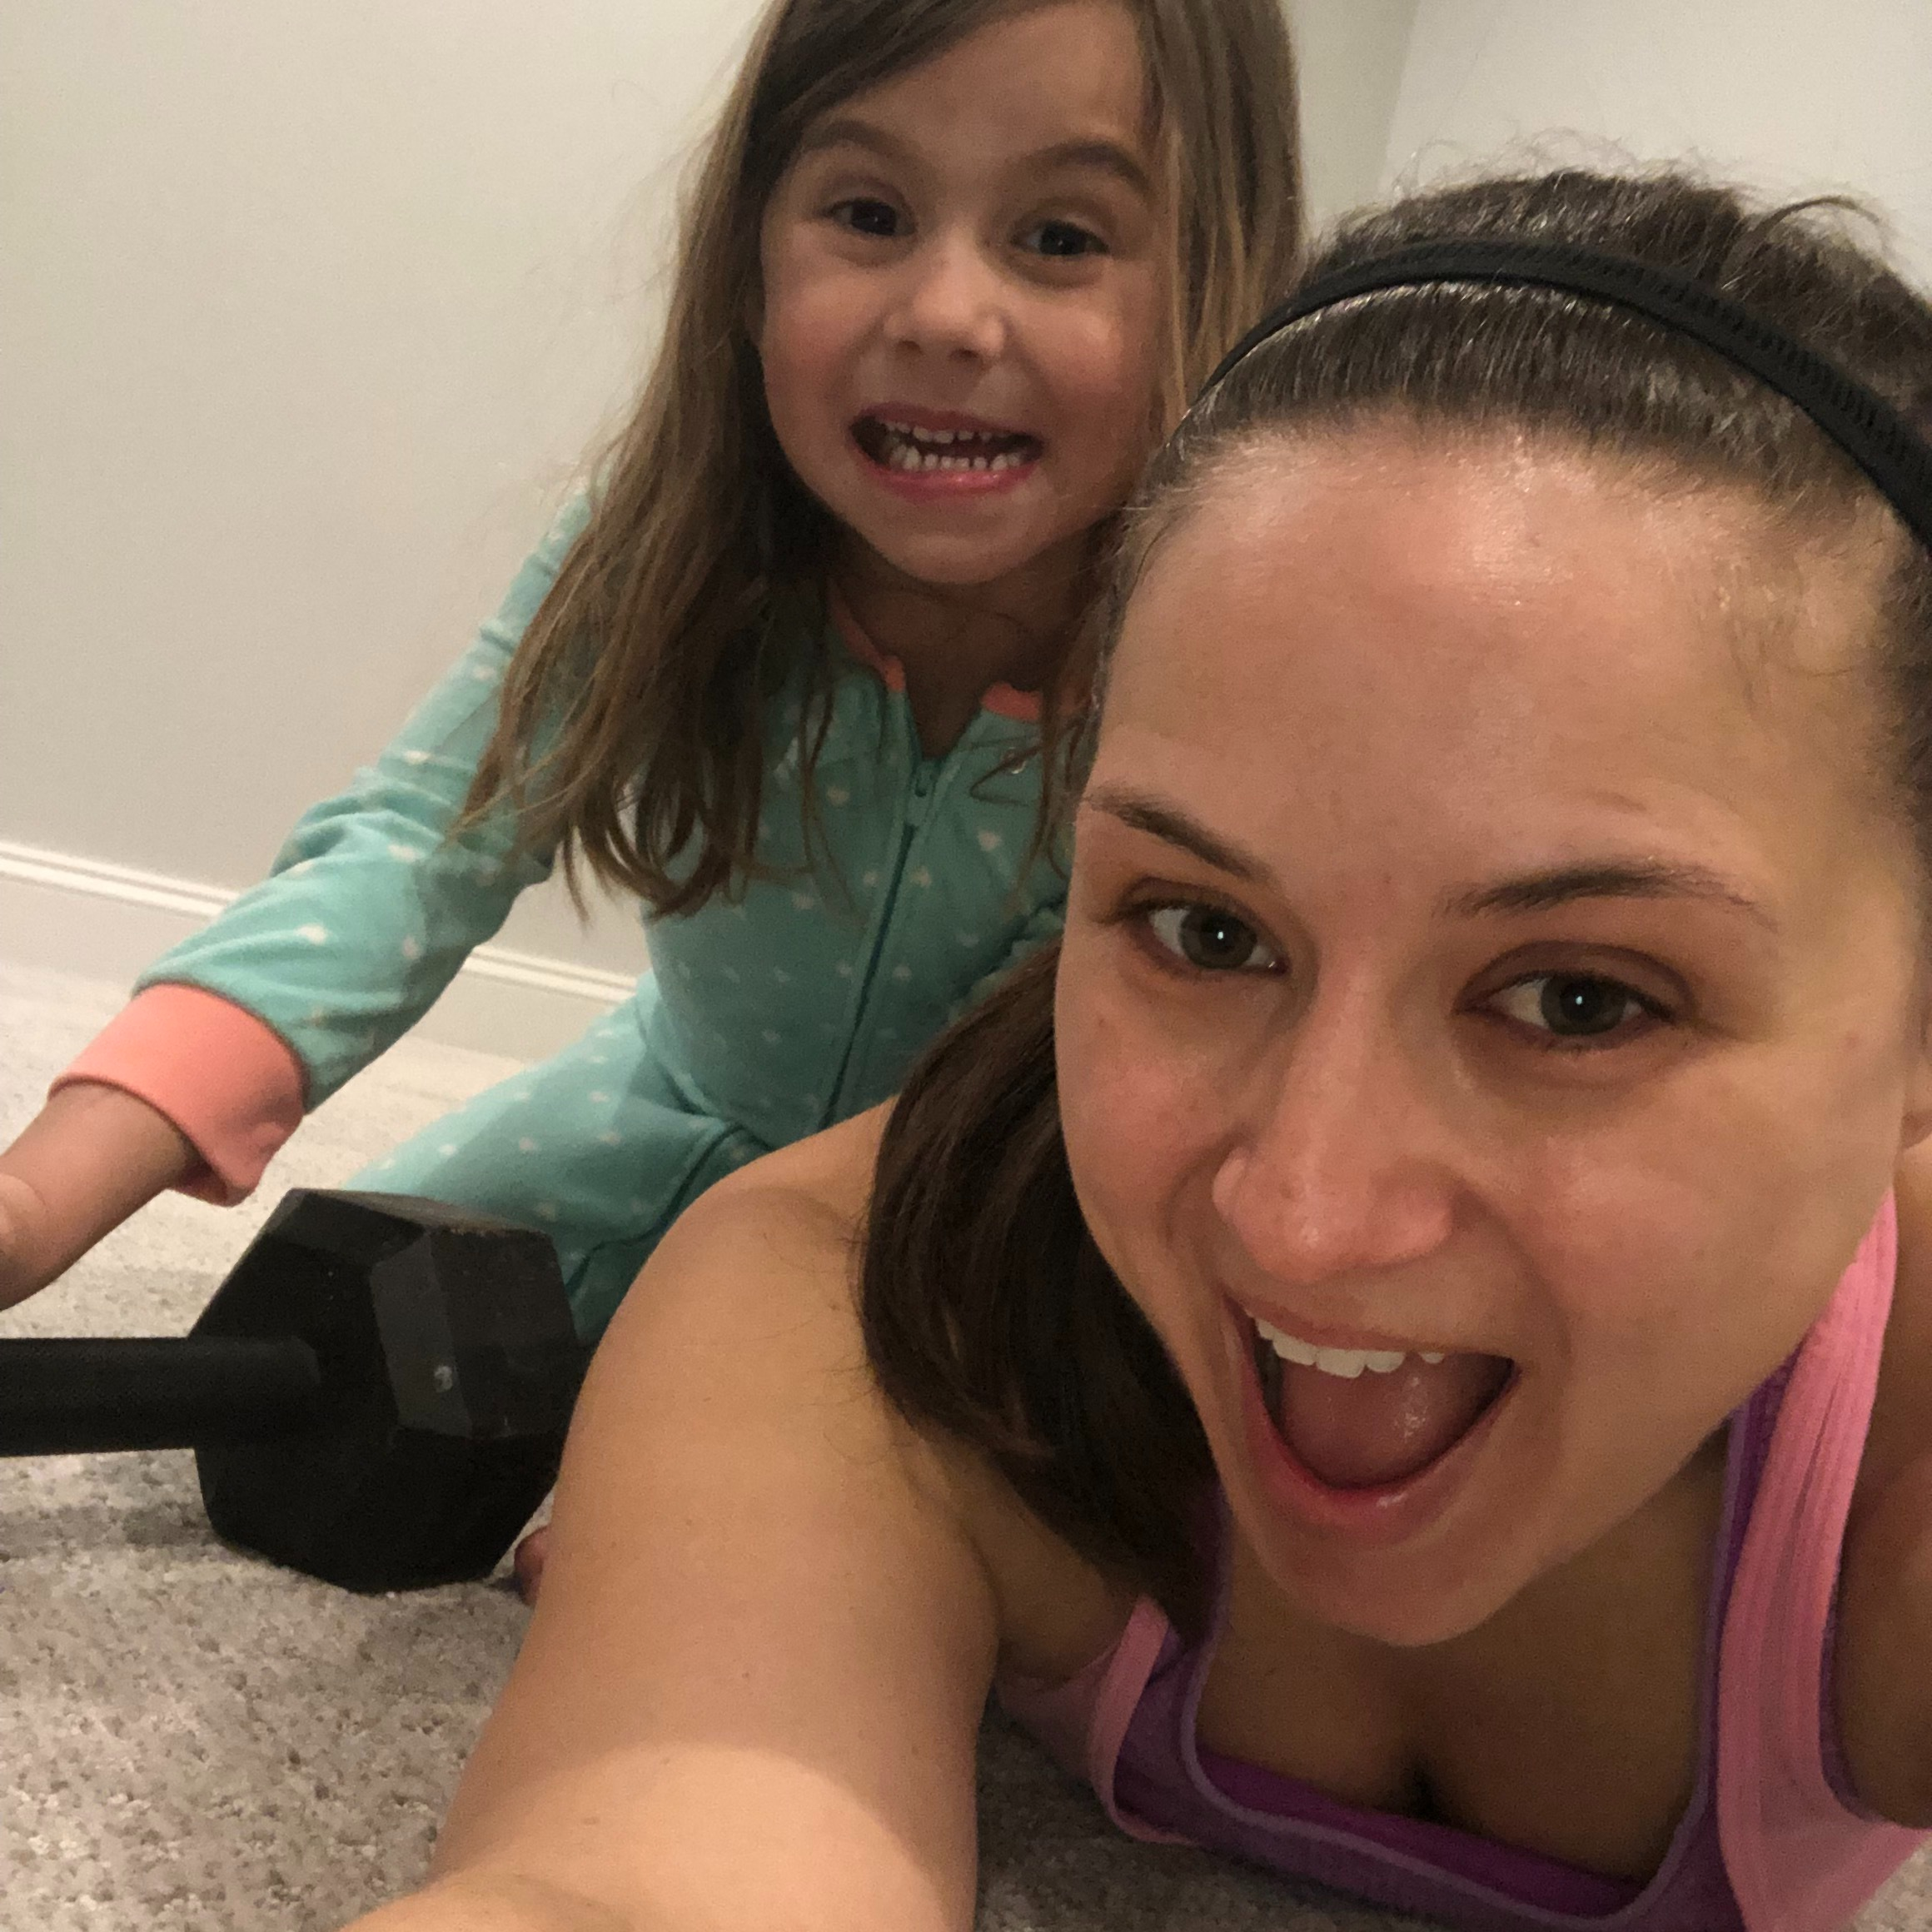 "Kelly Cousino - ""Anything worthwhile takes time & effort! And I am still a work in progress as I navigate the busy world of being a mom. But I do know for sure, that if I take care of myself and 'work on me' then I, in turn, can be the very best version of myself to my husband, children, extended family, & friends. Life as a Mom is crazy busy but we're all in this together! FASTer Way To Fat Loss has helped me become a better version of myself, and I am so grateful!! Thanks from the bottom of this busy mama's heart!! <3"""